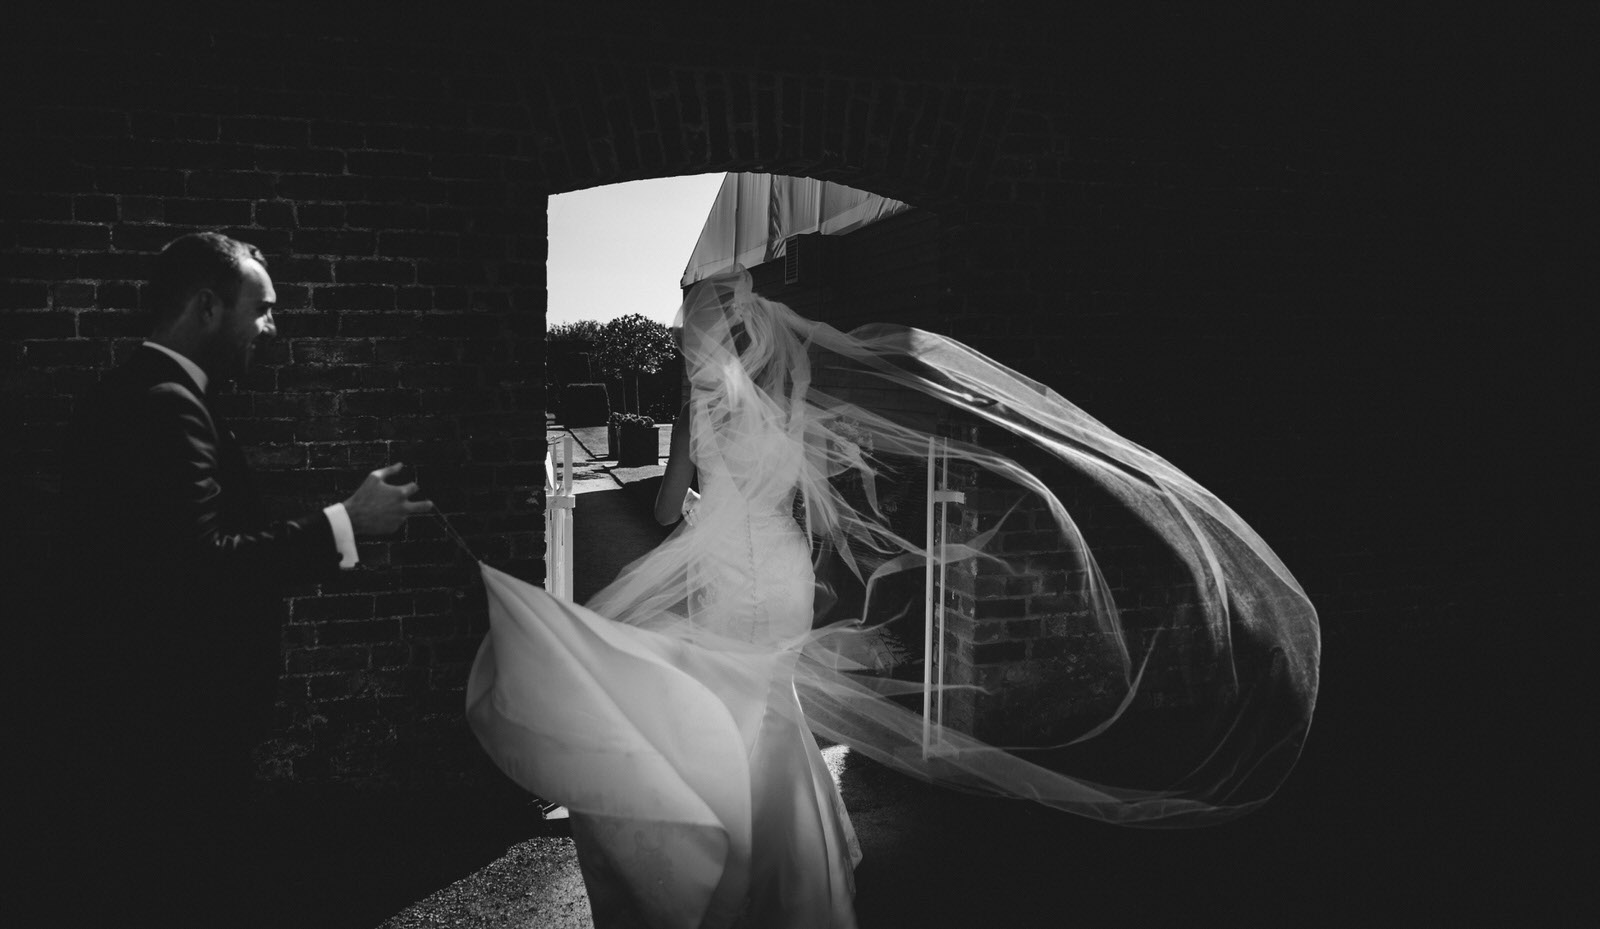 the wind catches the brides veil and creates a beautiful abstract image as the groom holds on tight to the dress